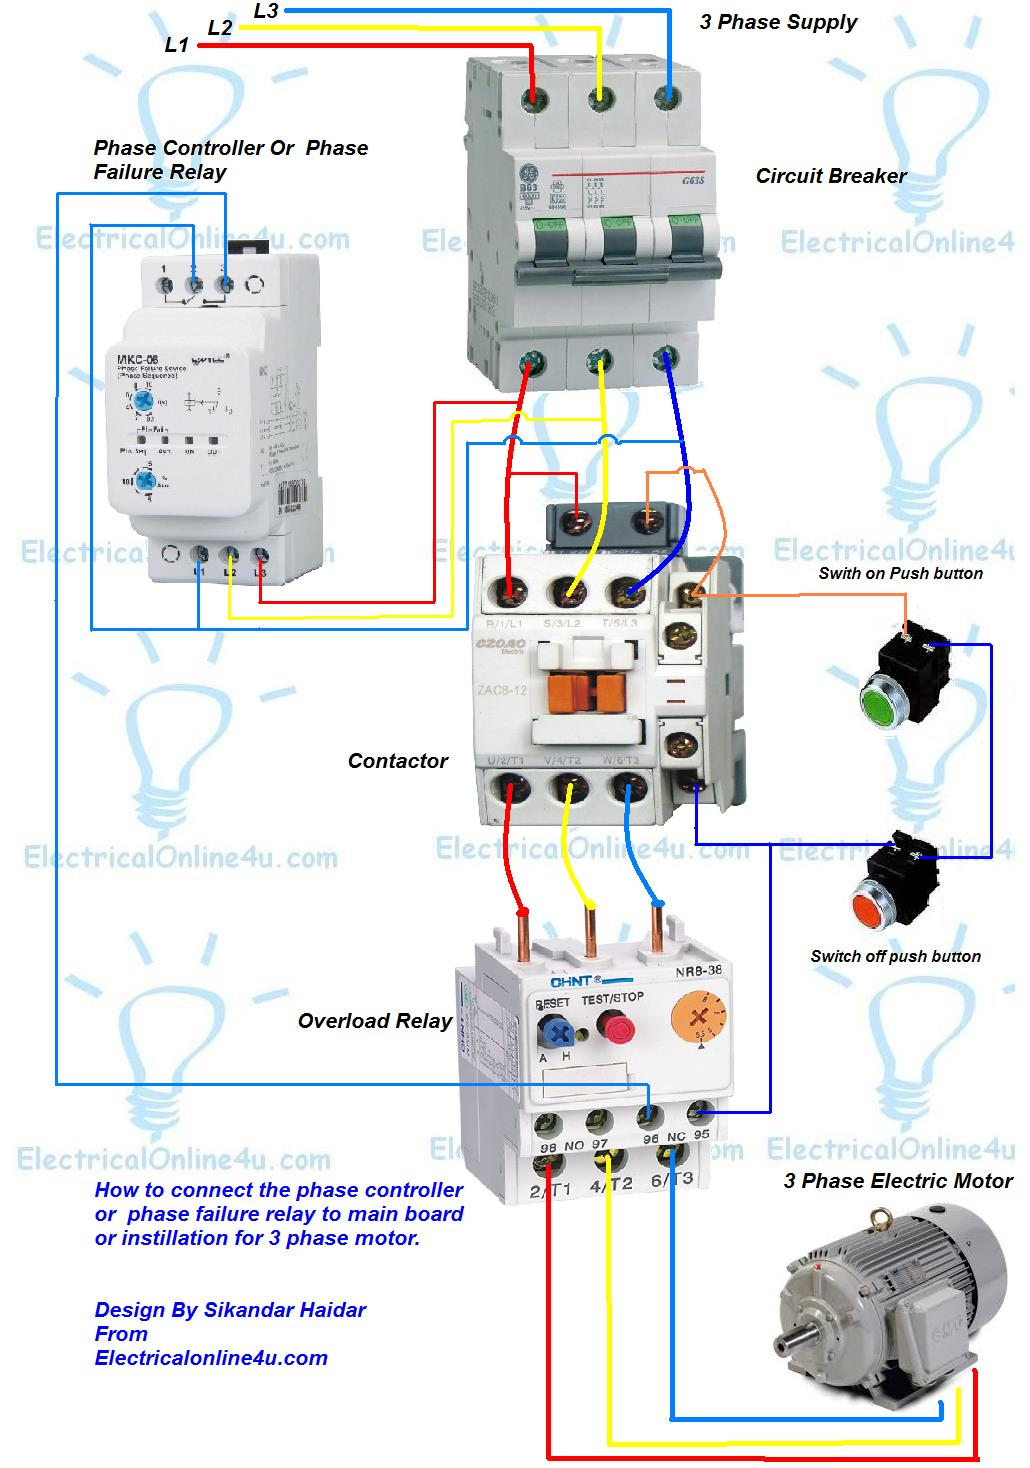 3 phase motor wiring diagram uk payroll process wrg 7799 circuit mitsubishi electric images gallery 4u auto electrical